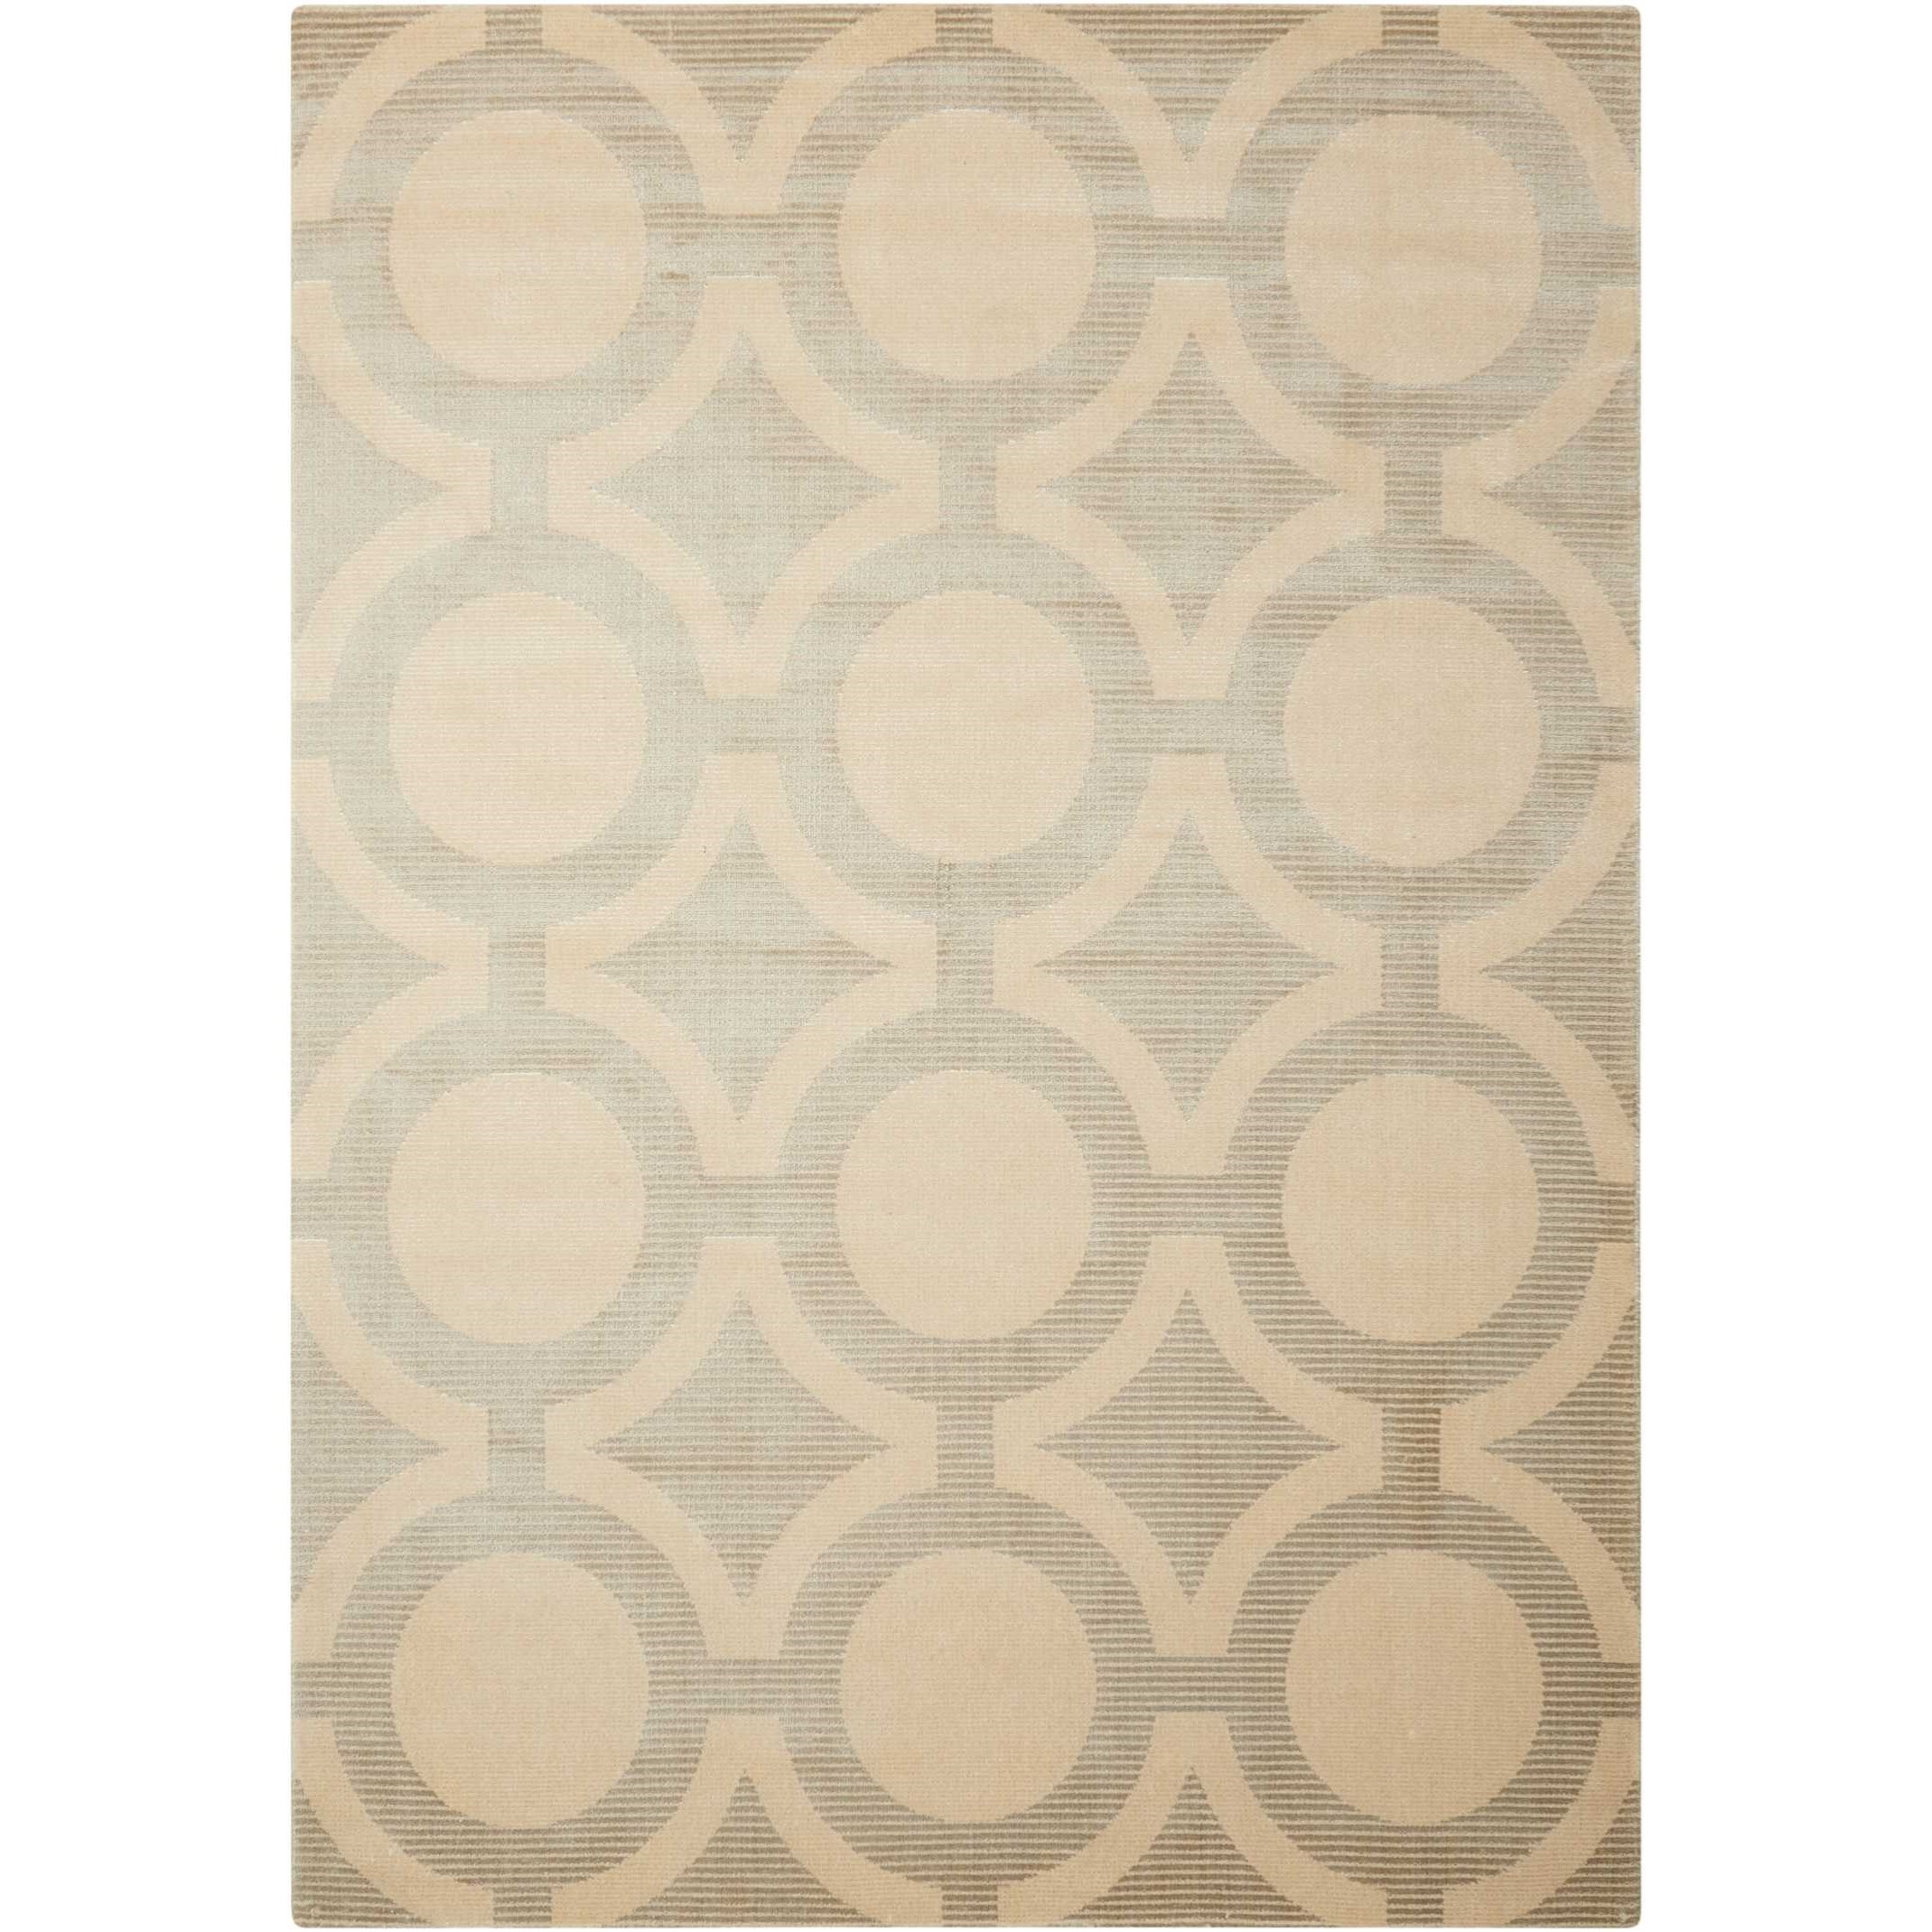 "Luminance 5'3"" x 7'5"" Cream Grey Rectangle Rug by Nourison at Home Collections Furniture"